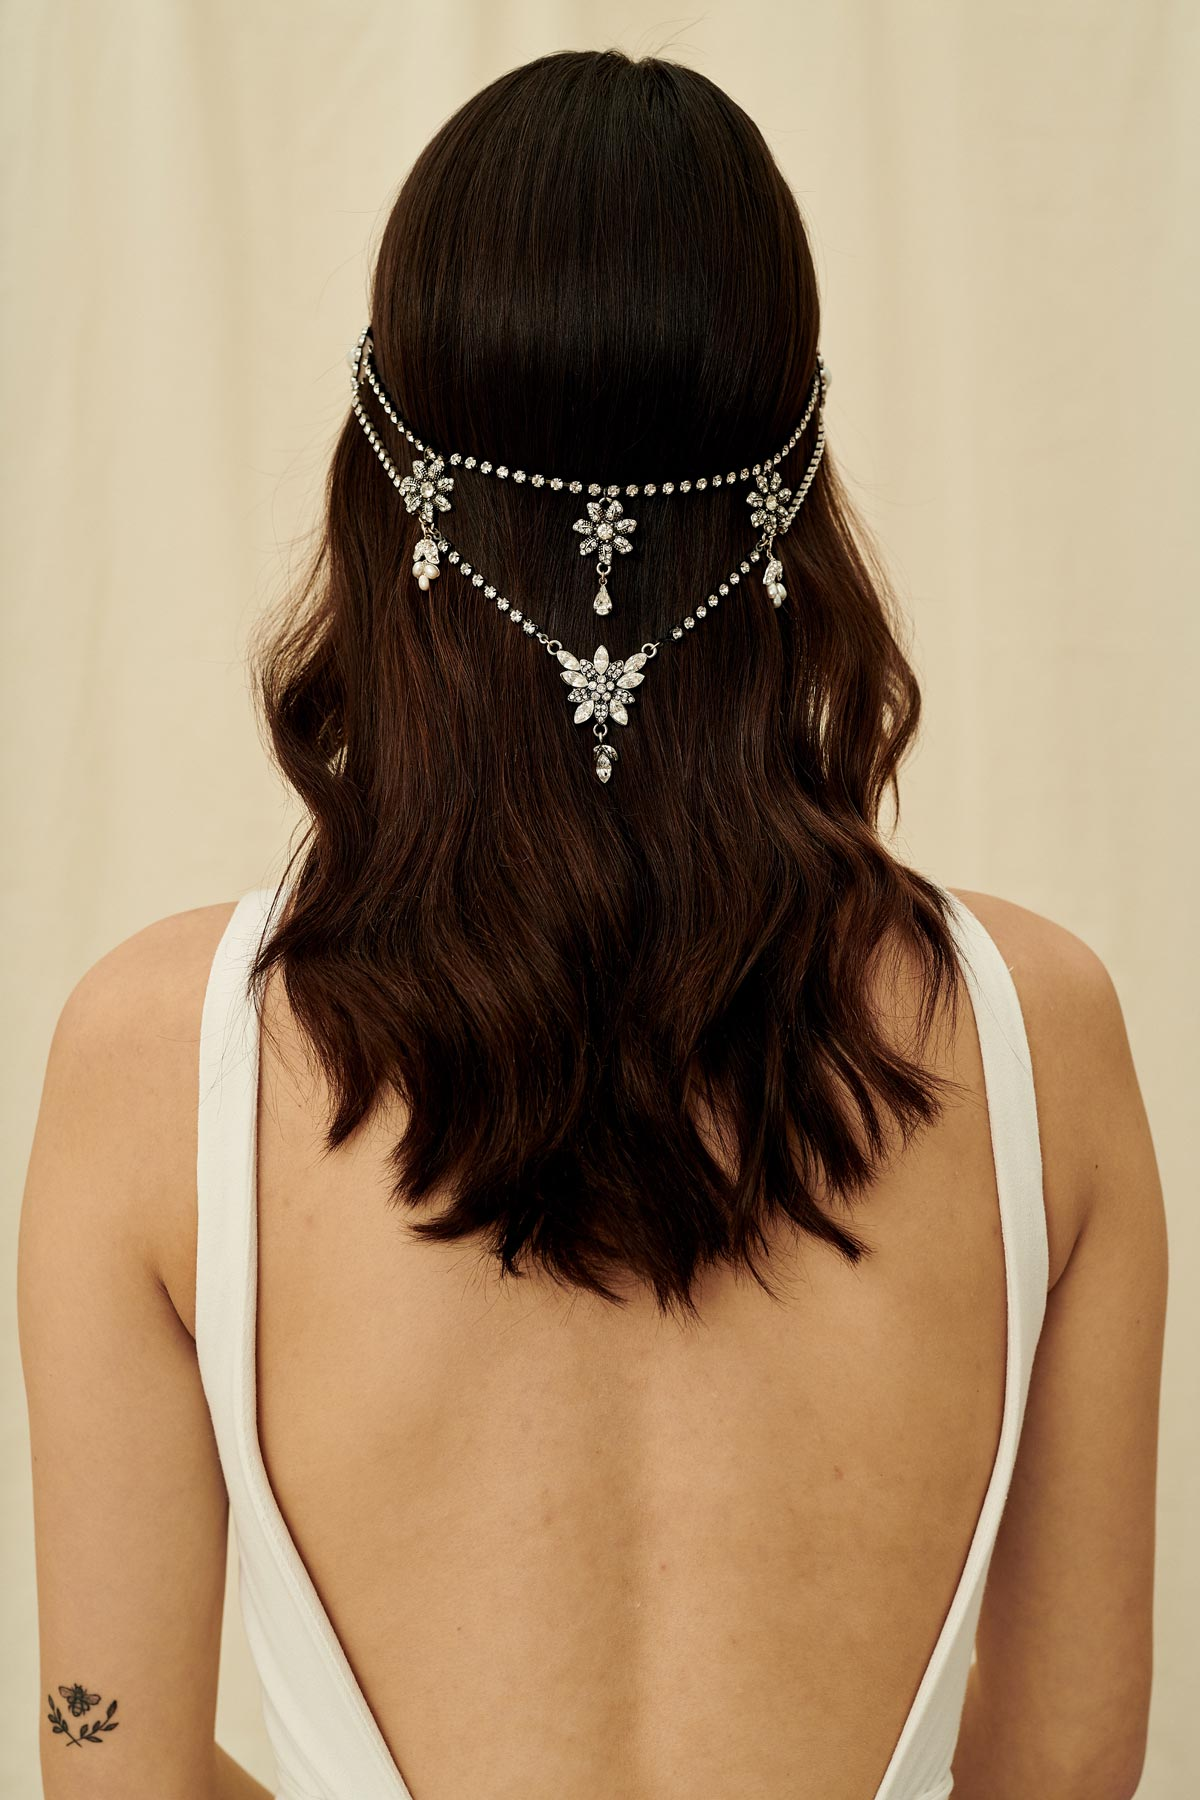 A Gatsby-inspired bridal hair accessory made with multiple strands of antique crystal chain and wired with freshwater pearls